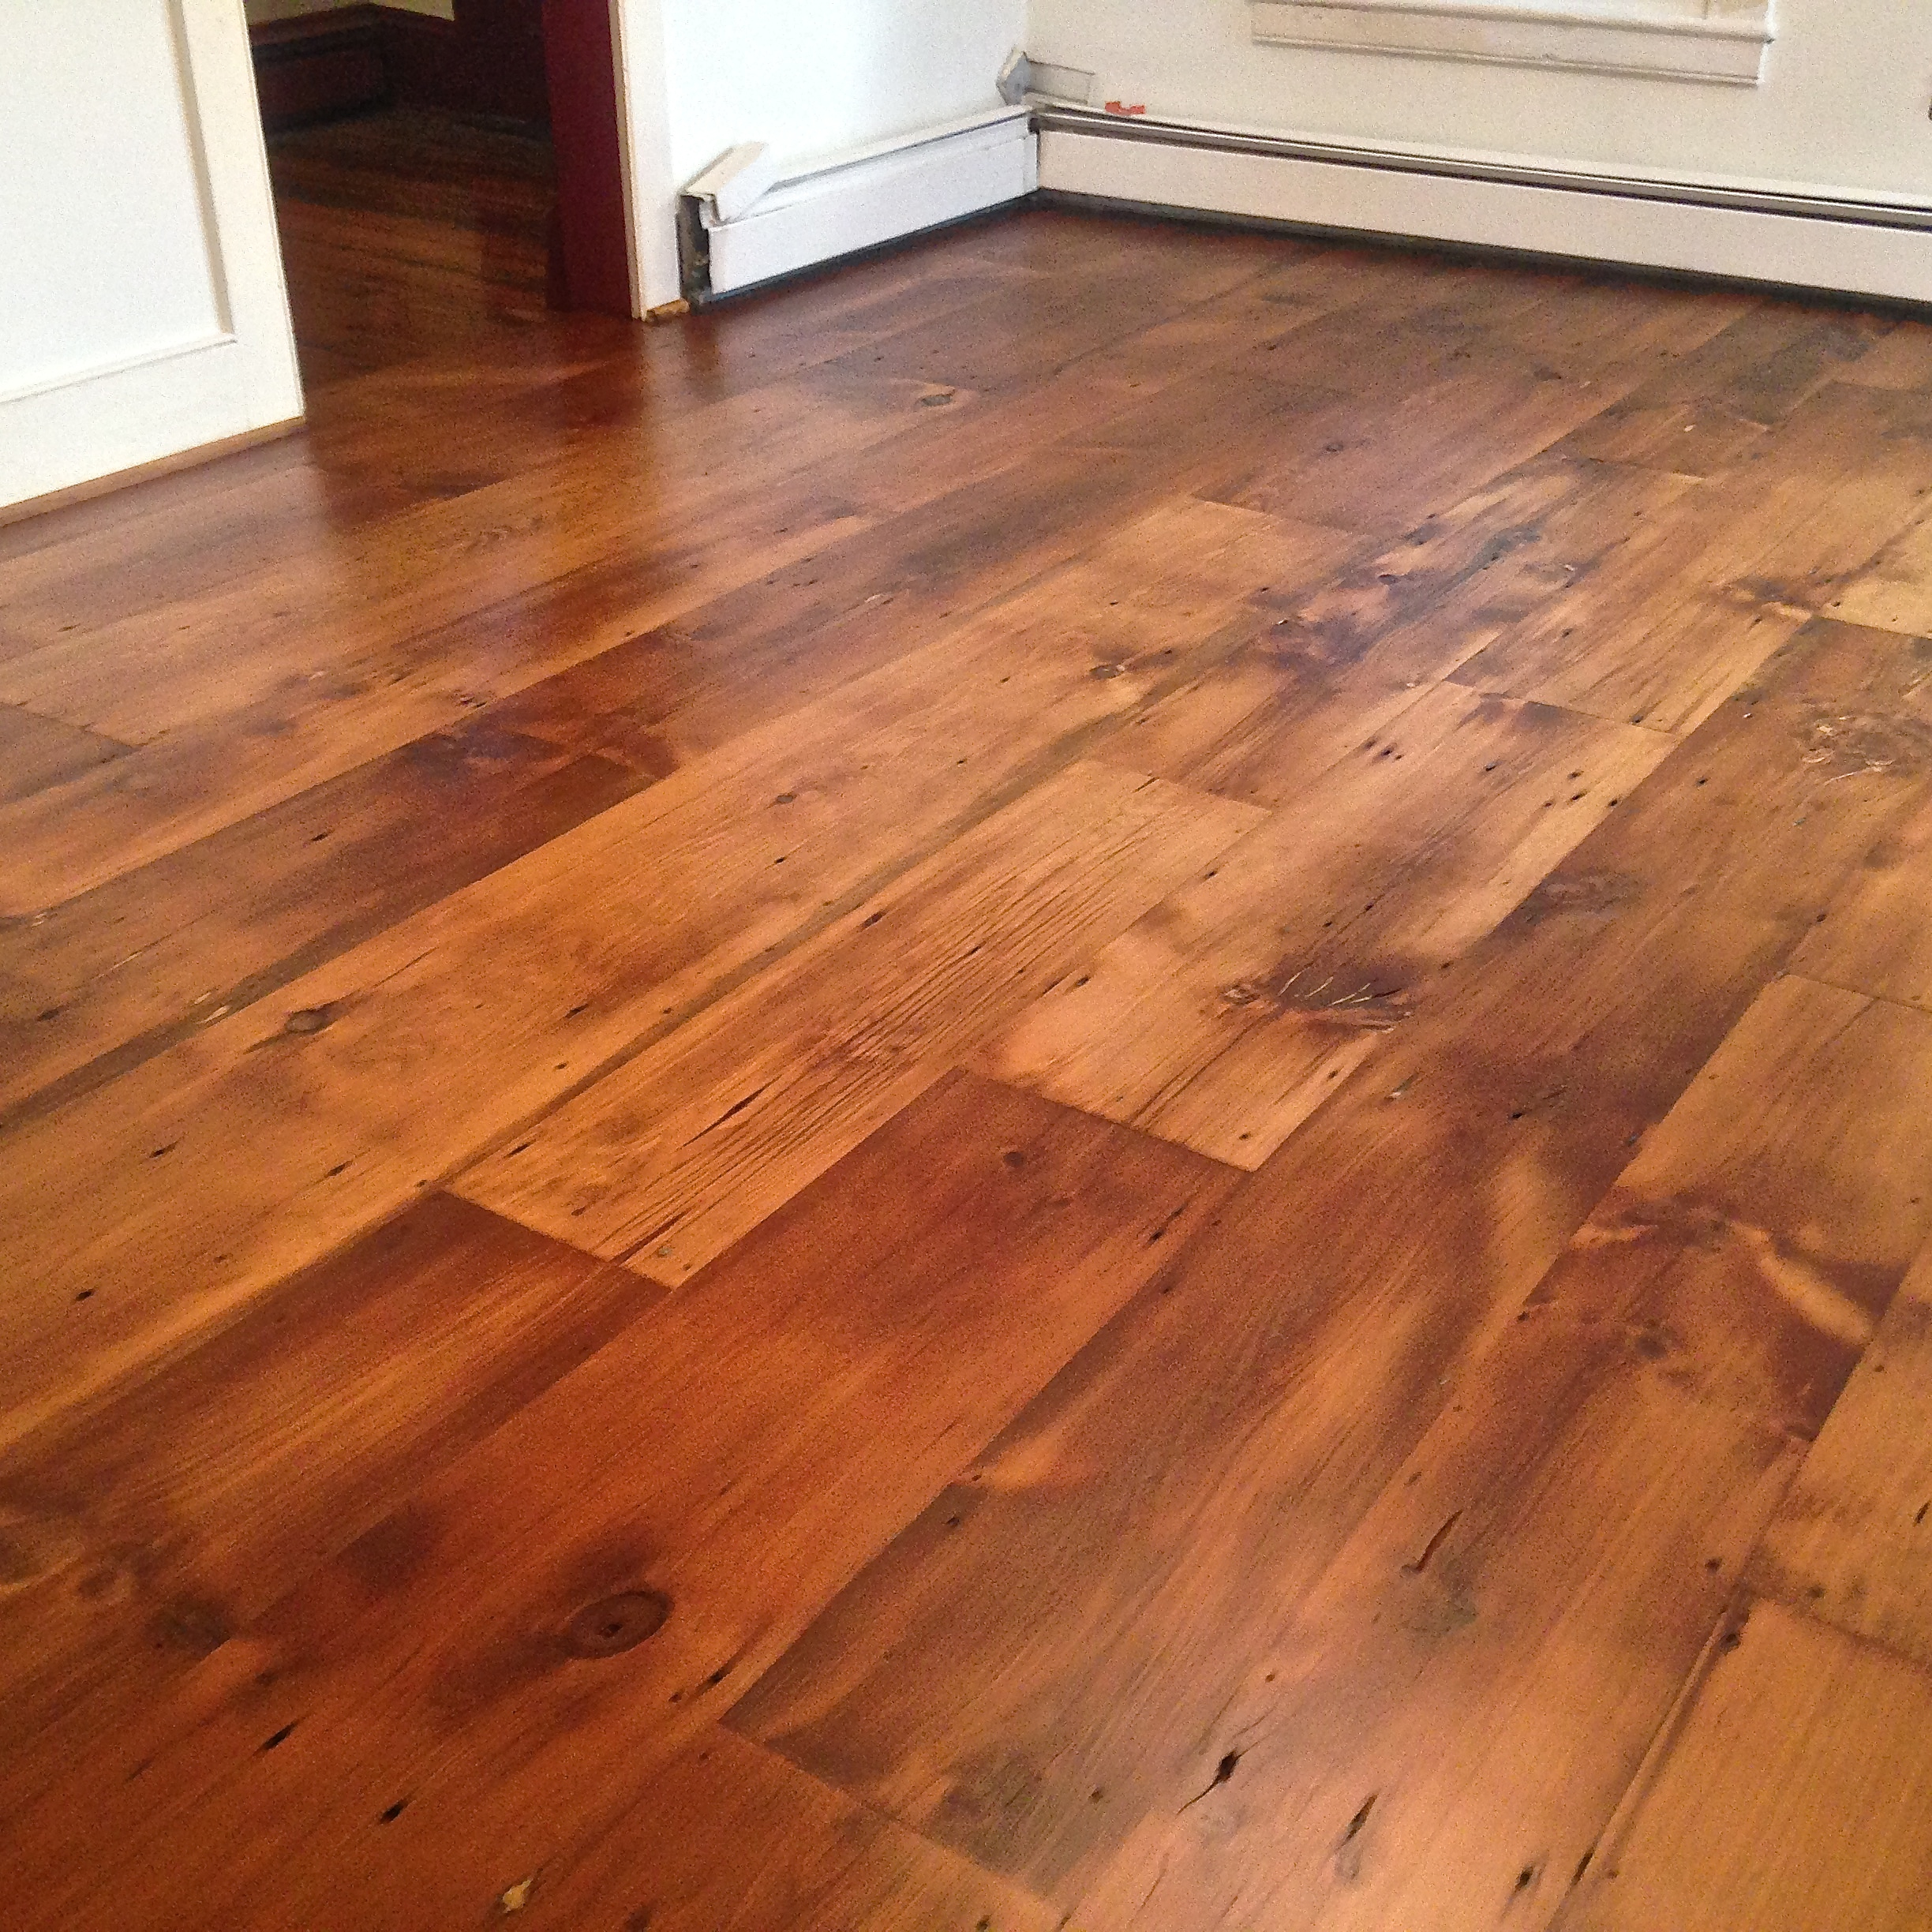 Wide plank reclaimed flooring authentic antique lumber for Reclaimed hardwood flooring